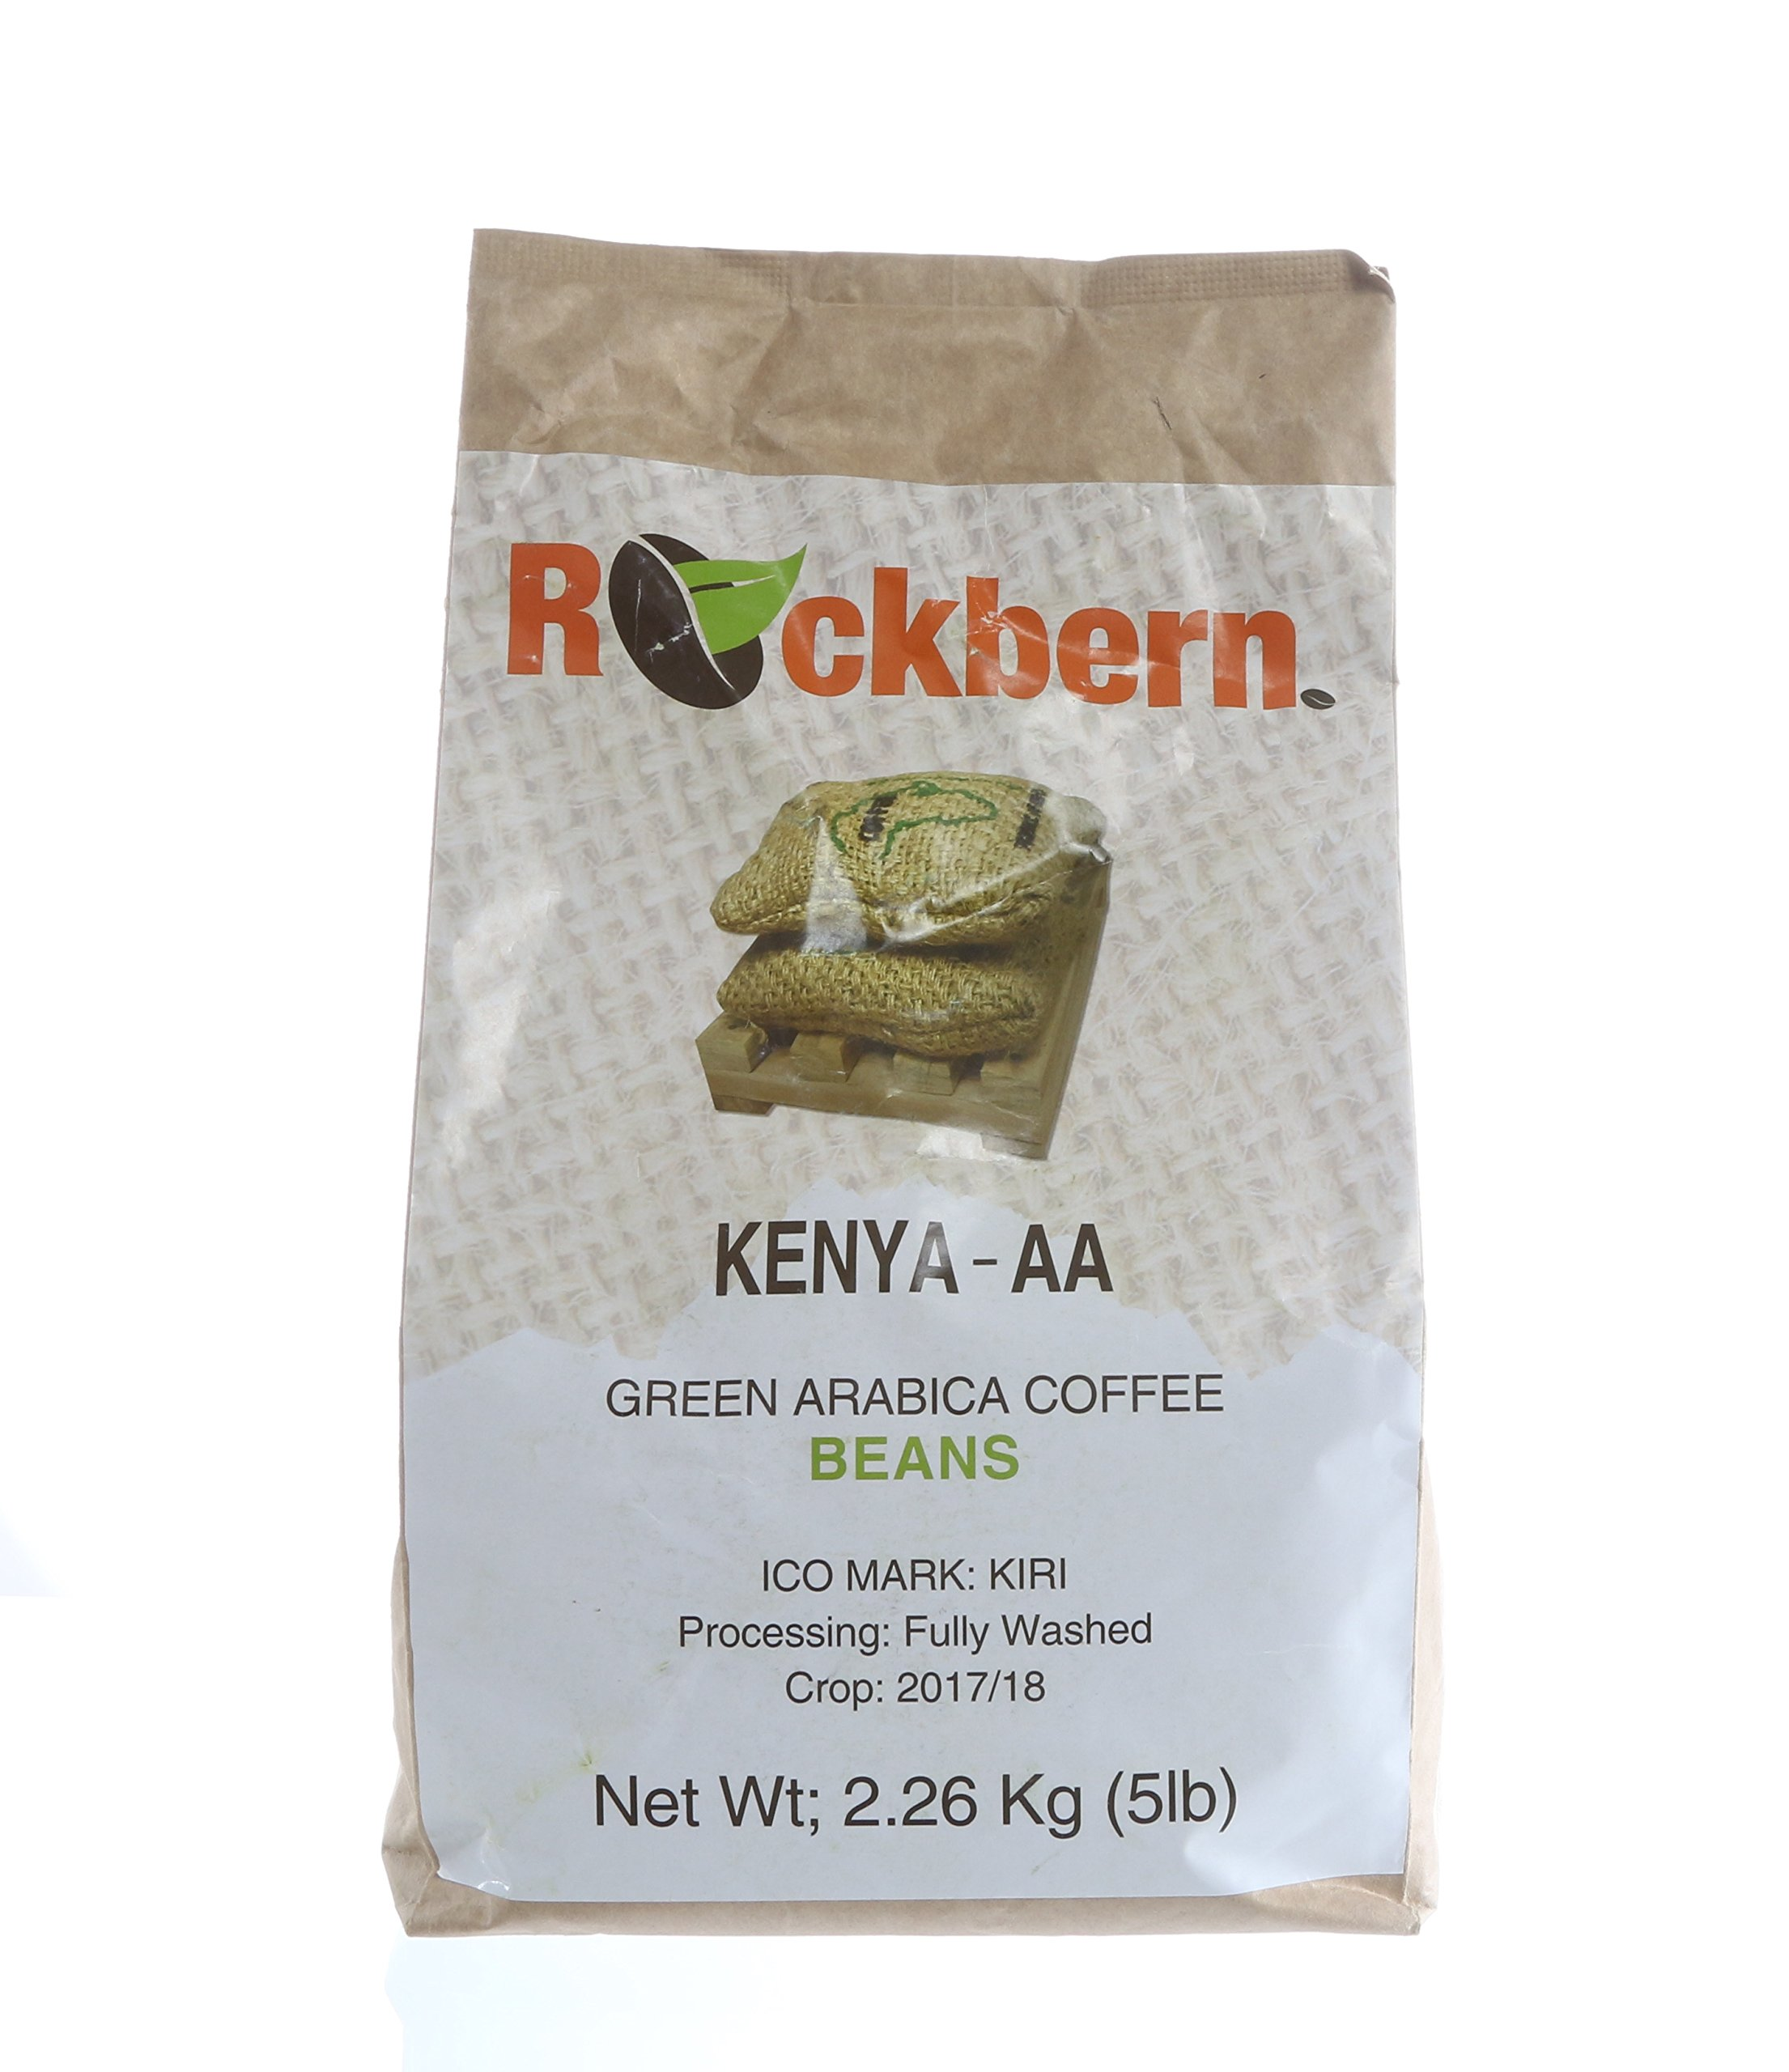 Unroasted Raw Green Coffee Beans - 5LB, Mt. Kenya AA Single Origin Gourmet Arabica Coffee Beans for Roasting